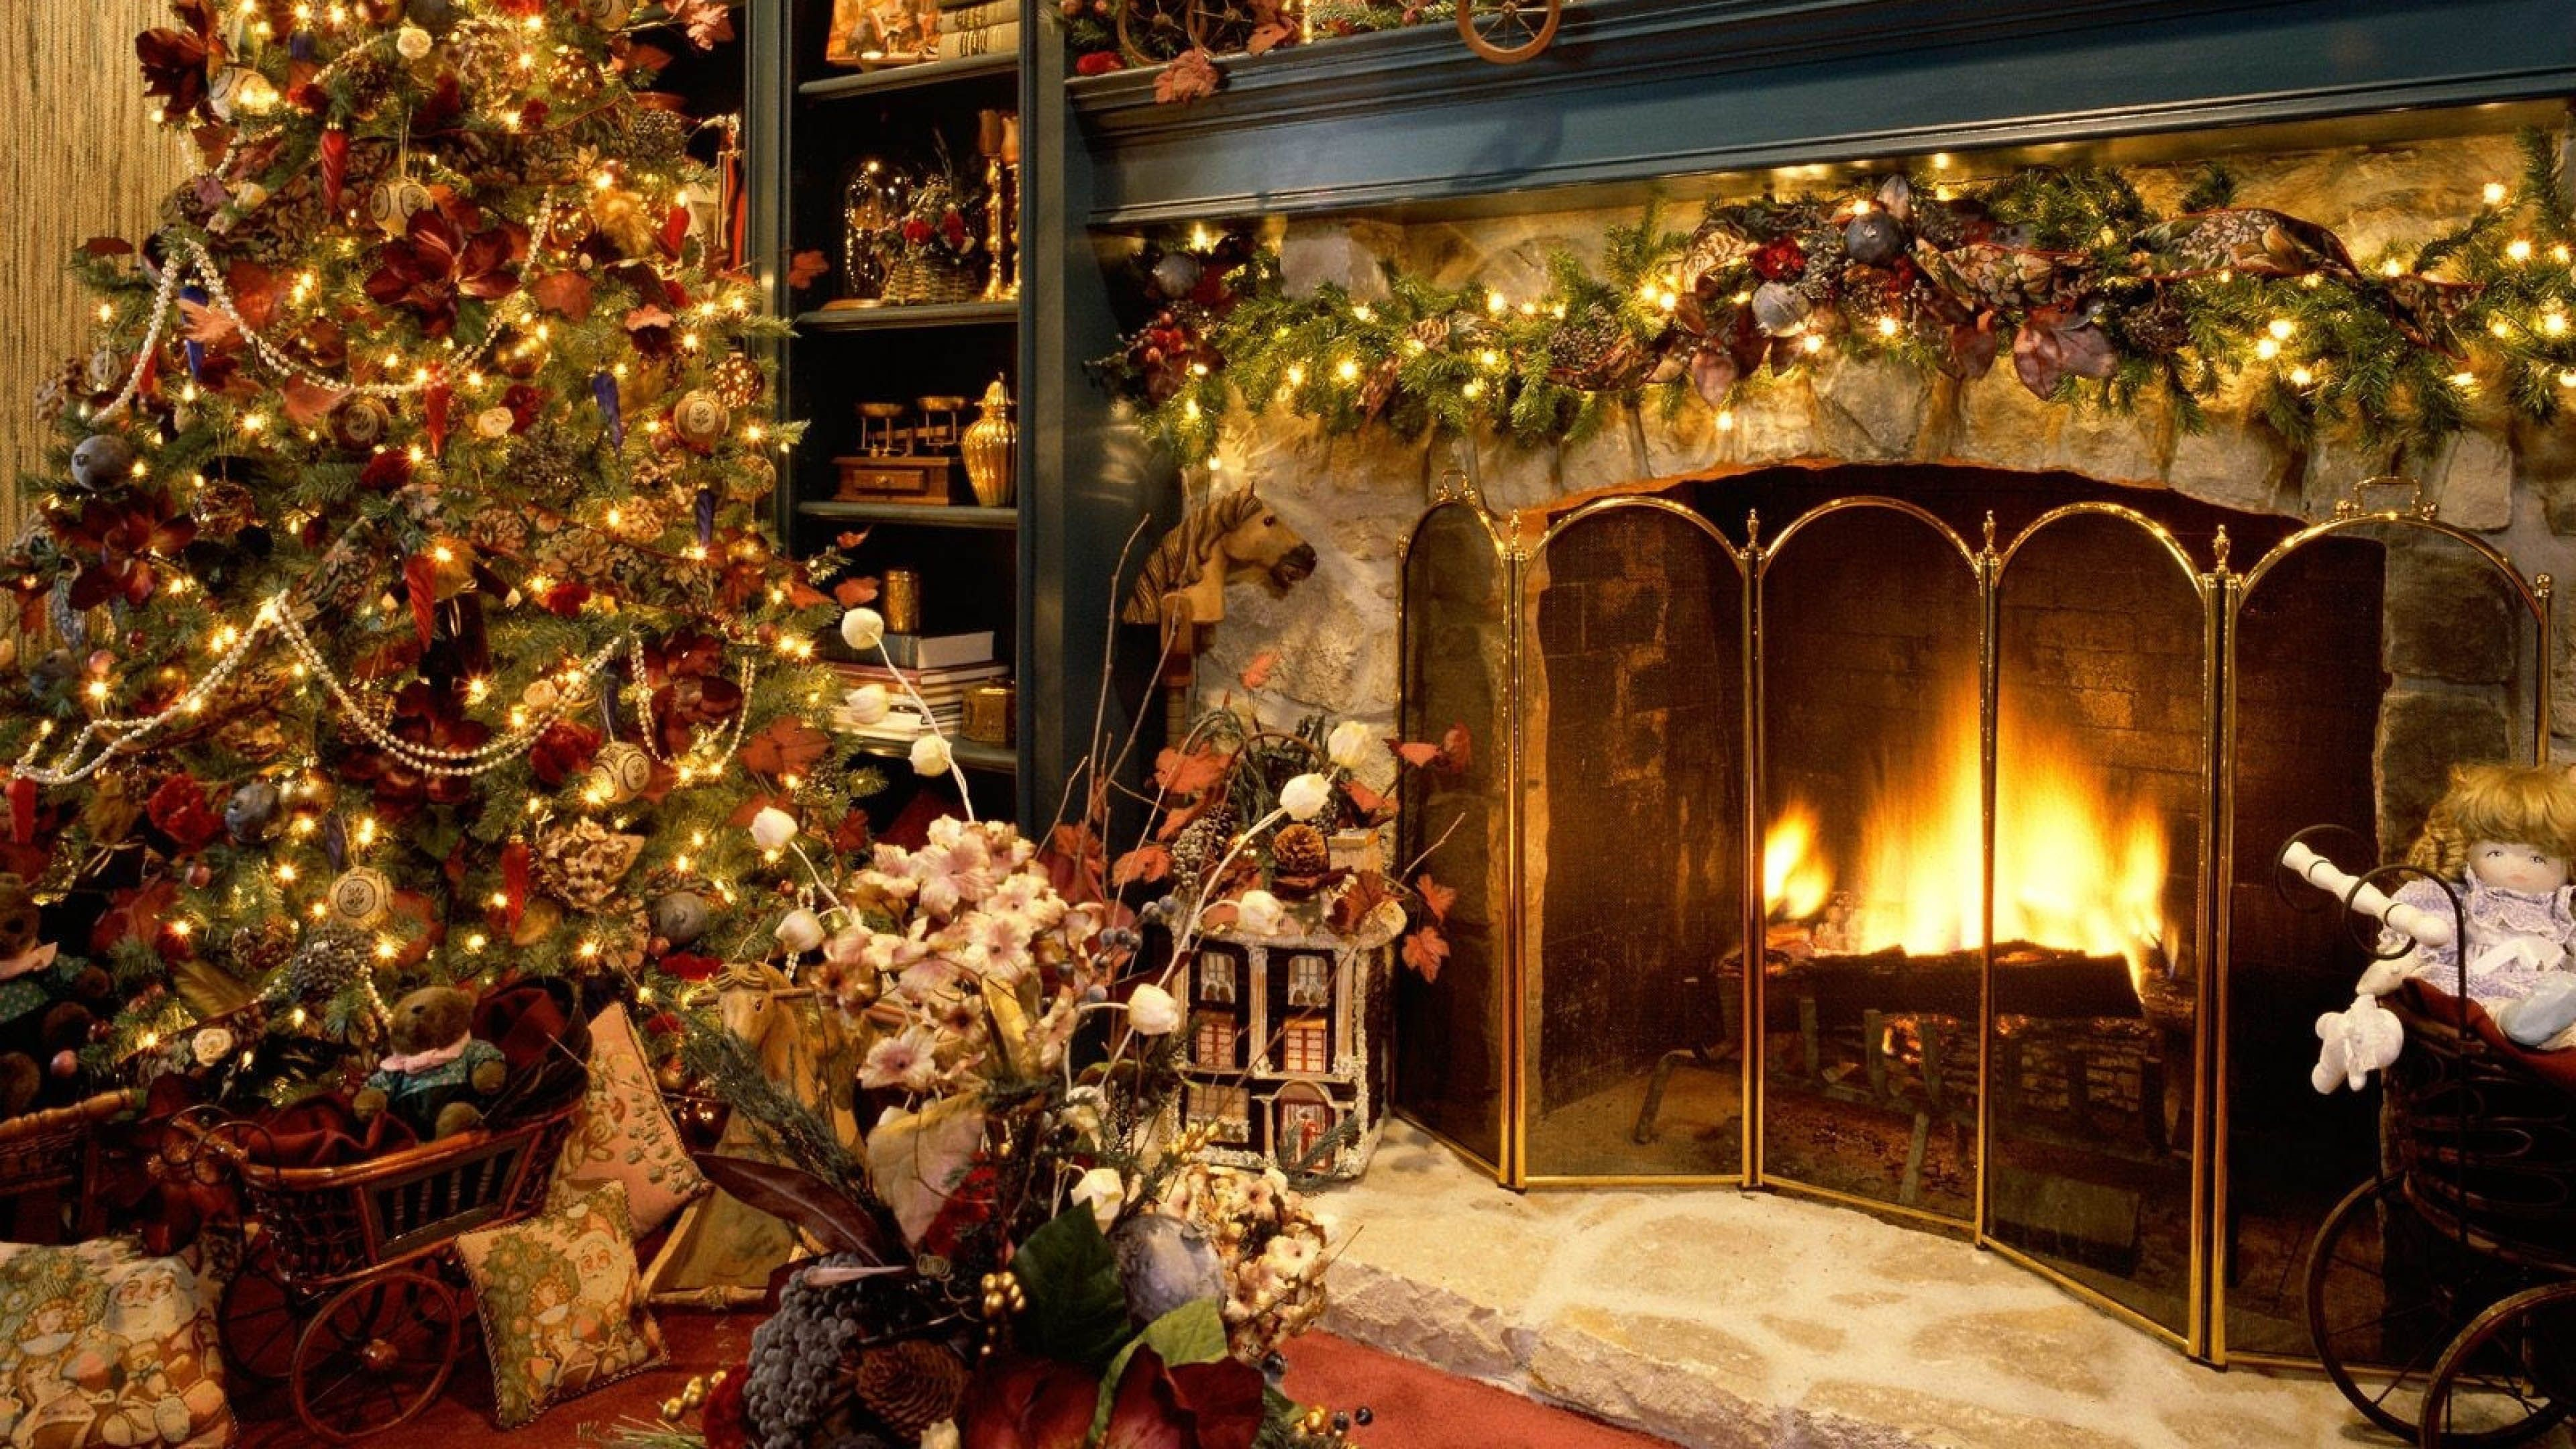 3840x2160 Christmas Fireplace Wallpaper